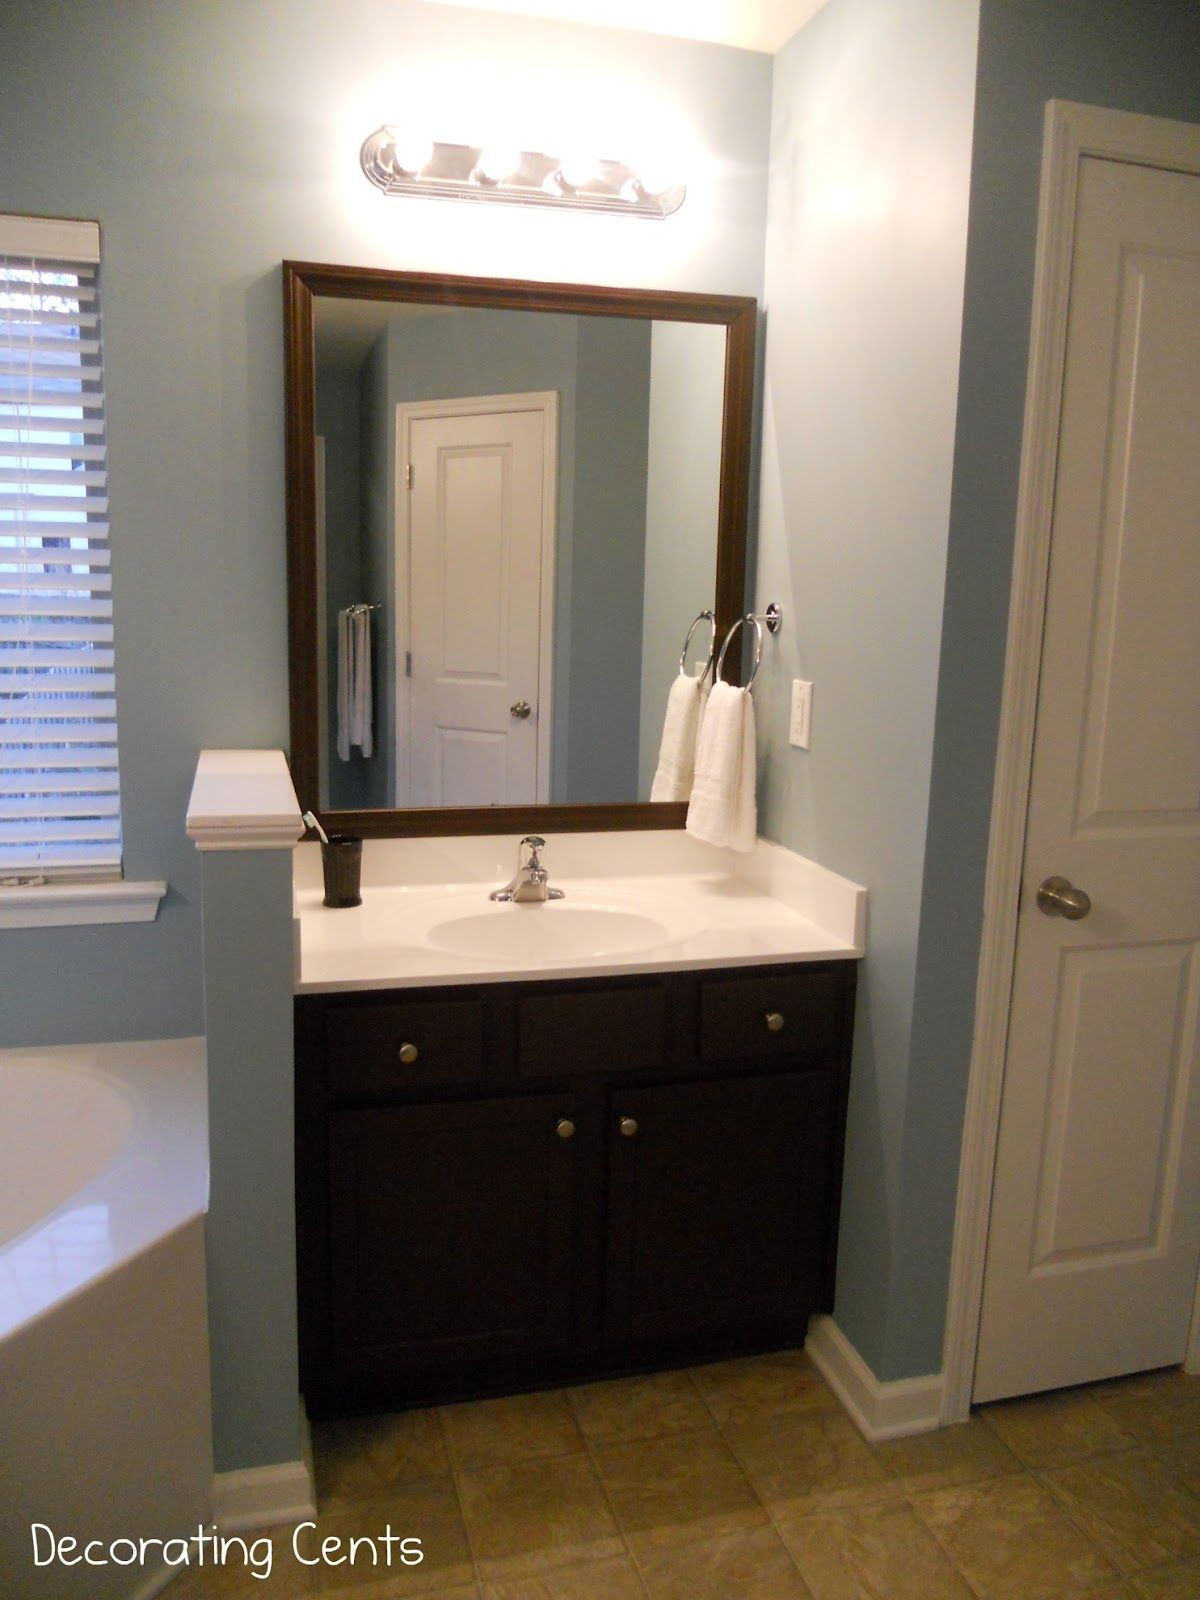 Decorating Cents Framing The Bathroom Mirrors Bathroom Mirror Bathroom Mirror Frame Cabinet Transformations